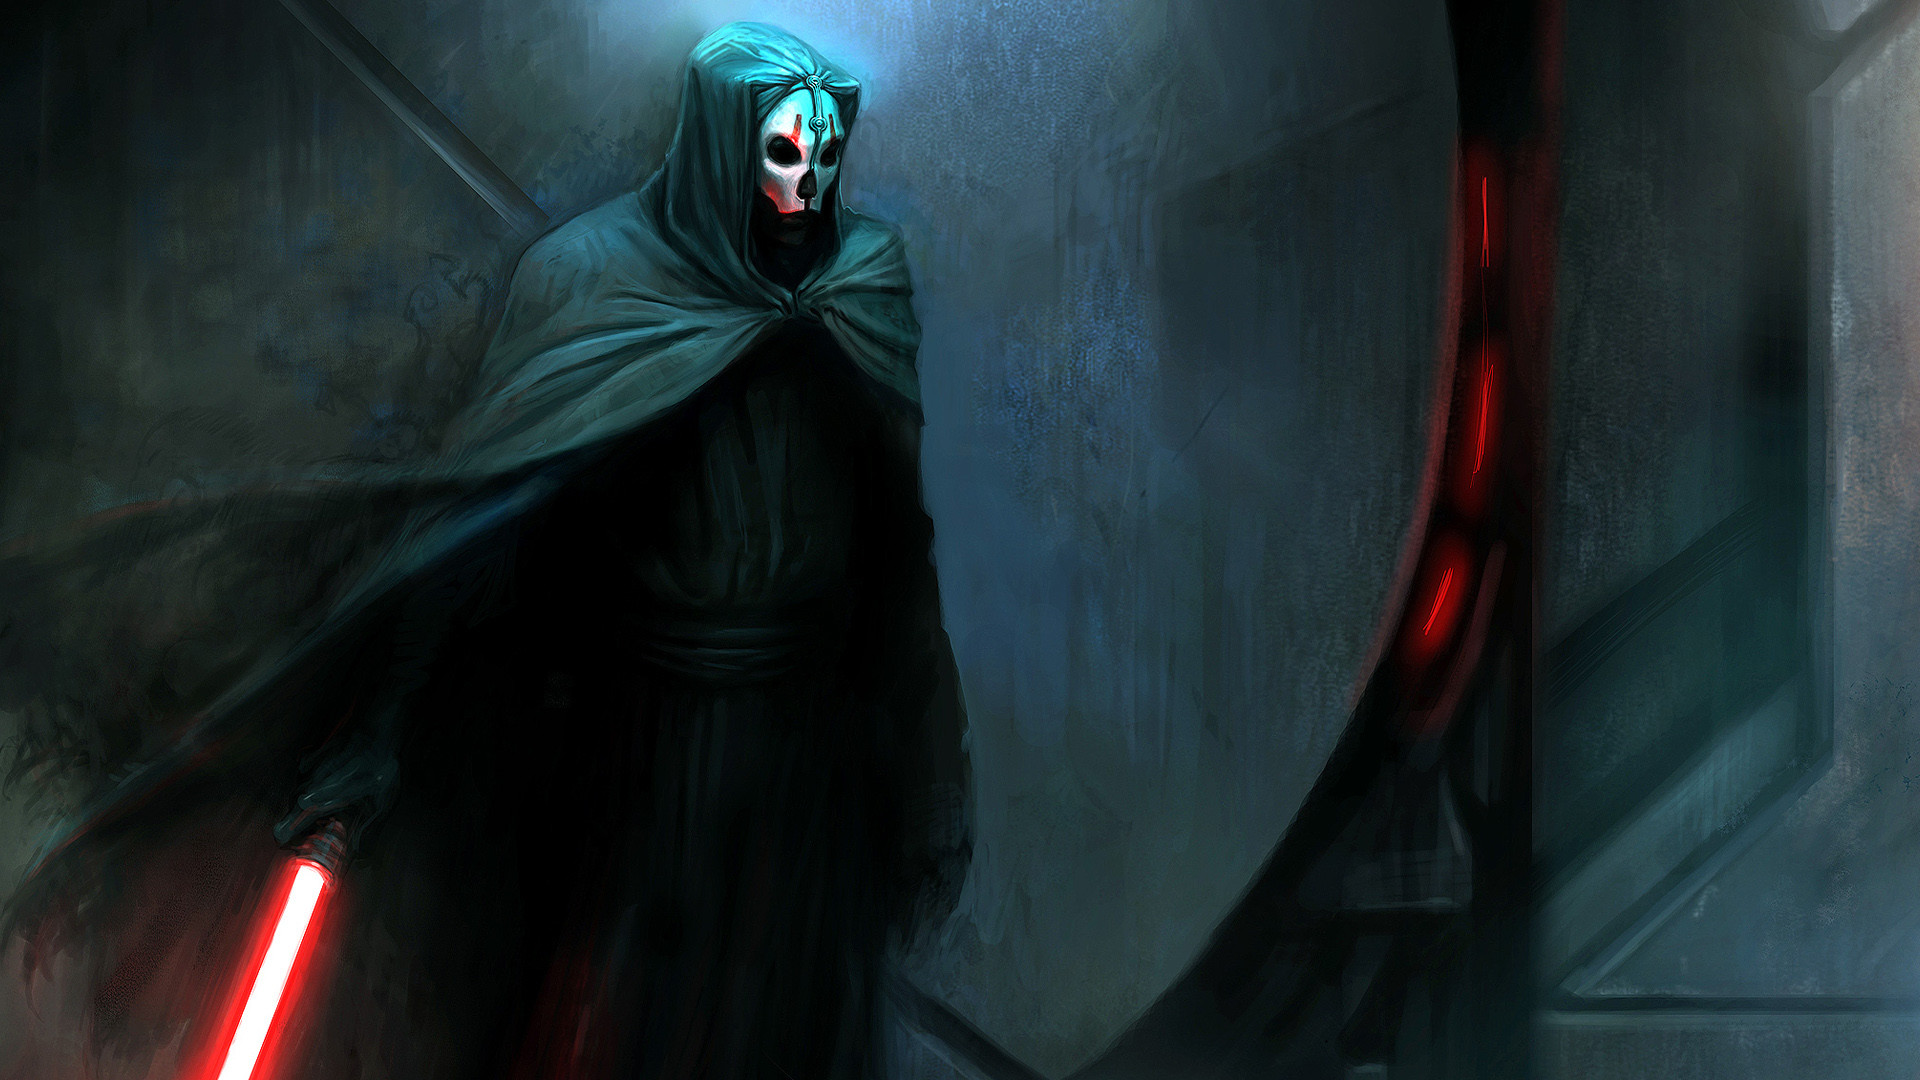 1920x1080 8 Star Wars: Knights Of The Old Republic Ii HD Wallpapers | Backgrounds -  Wallpaper Abyss